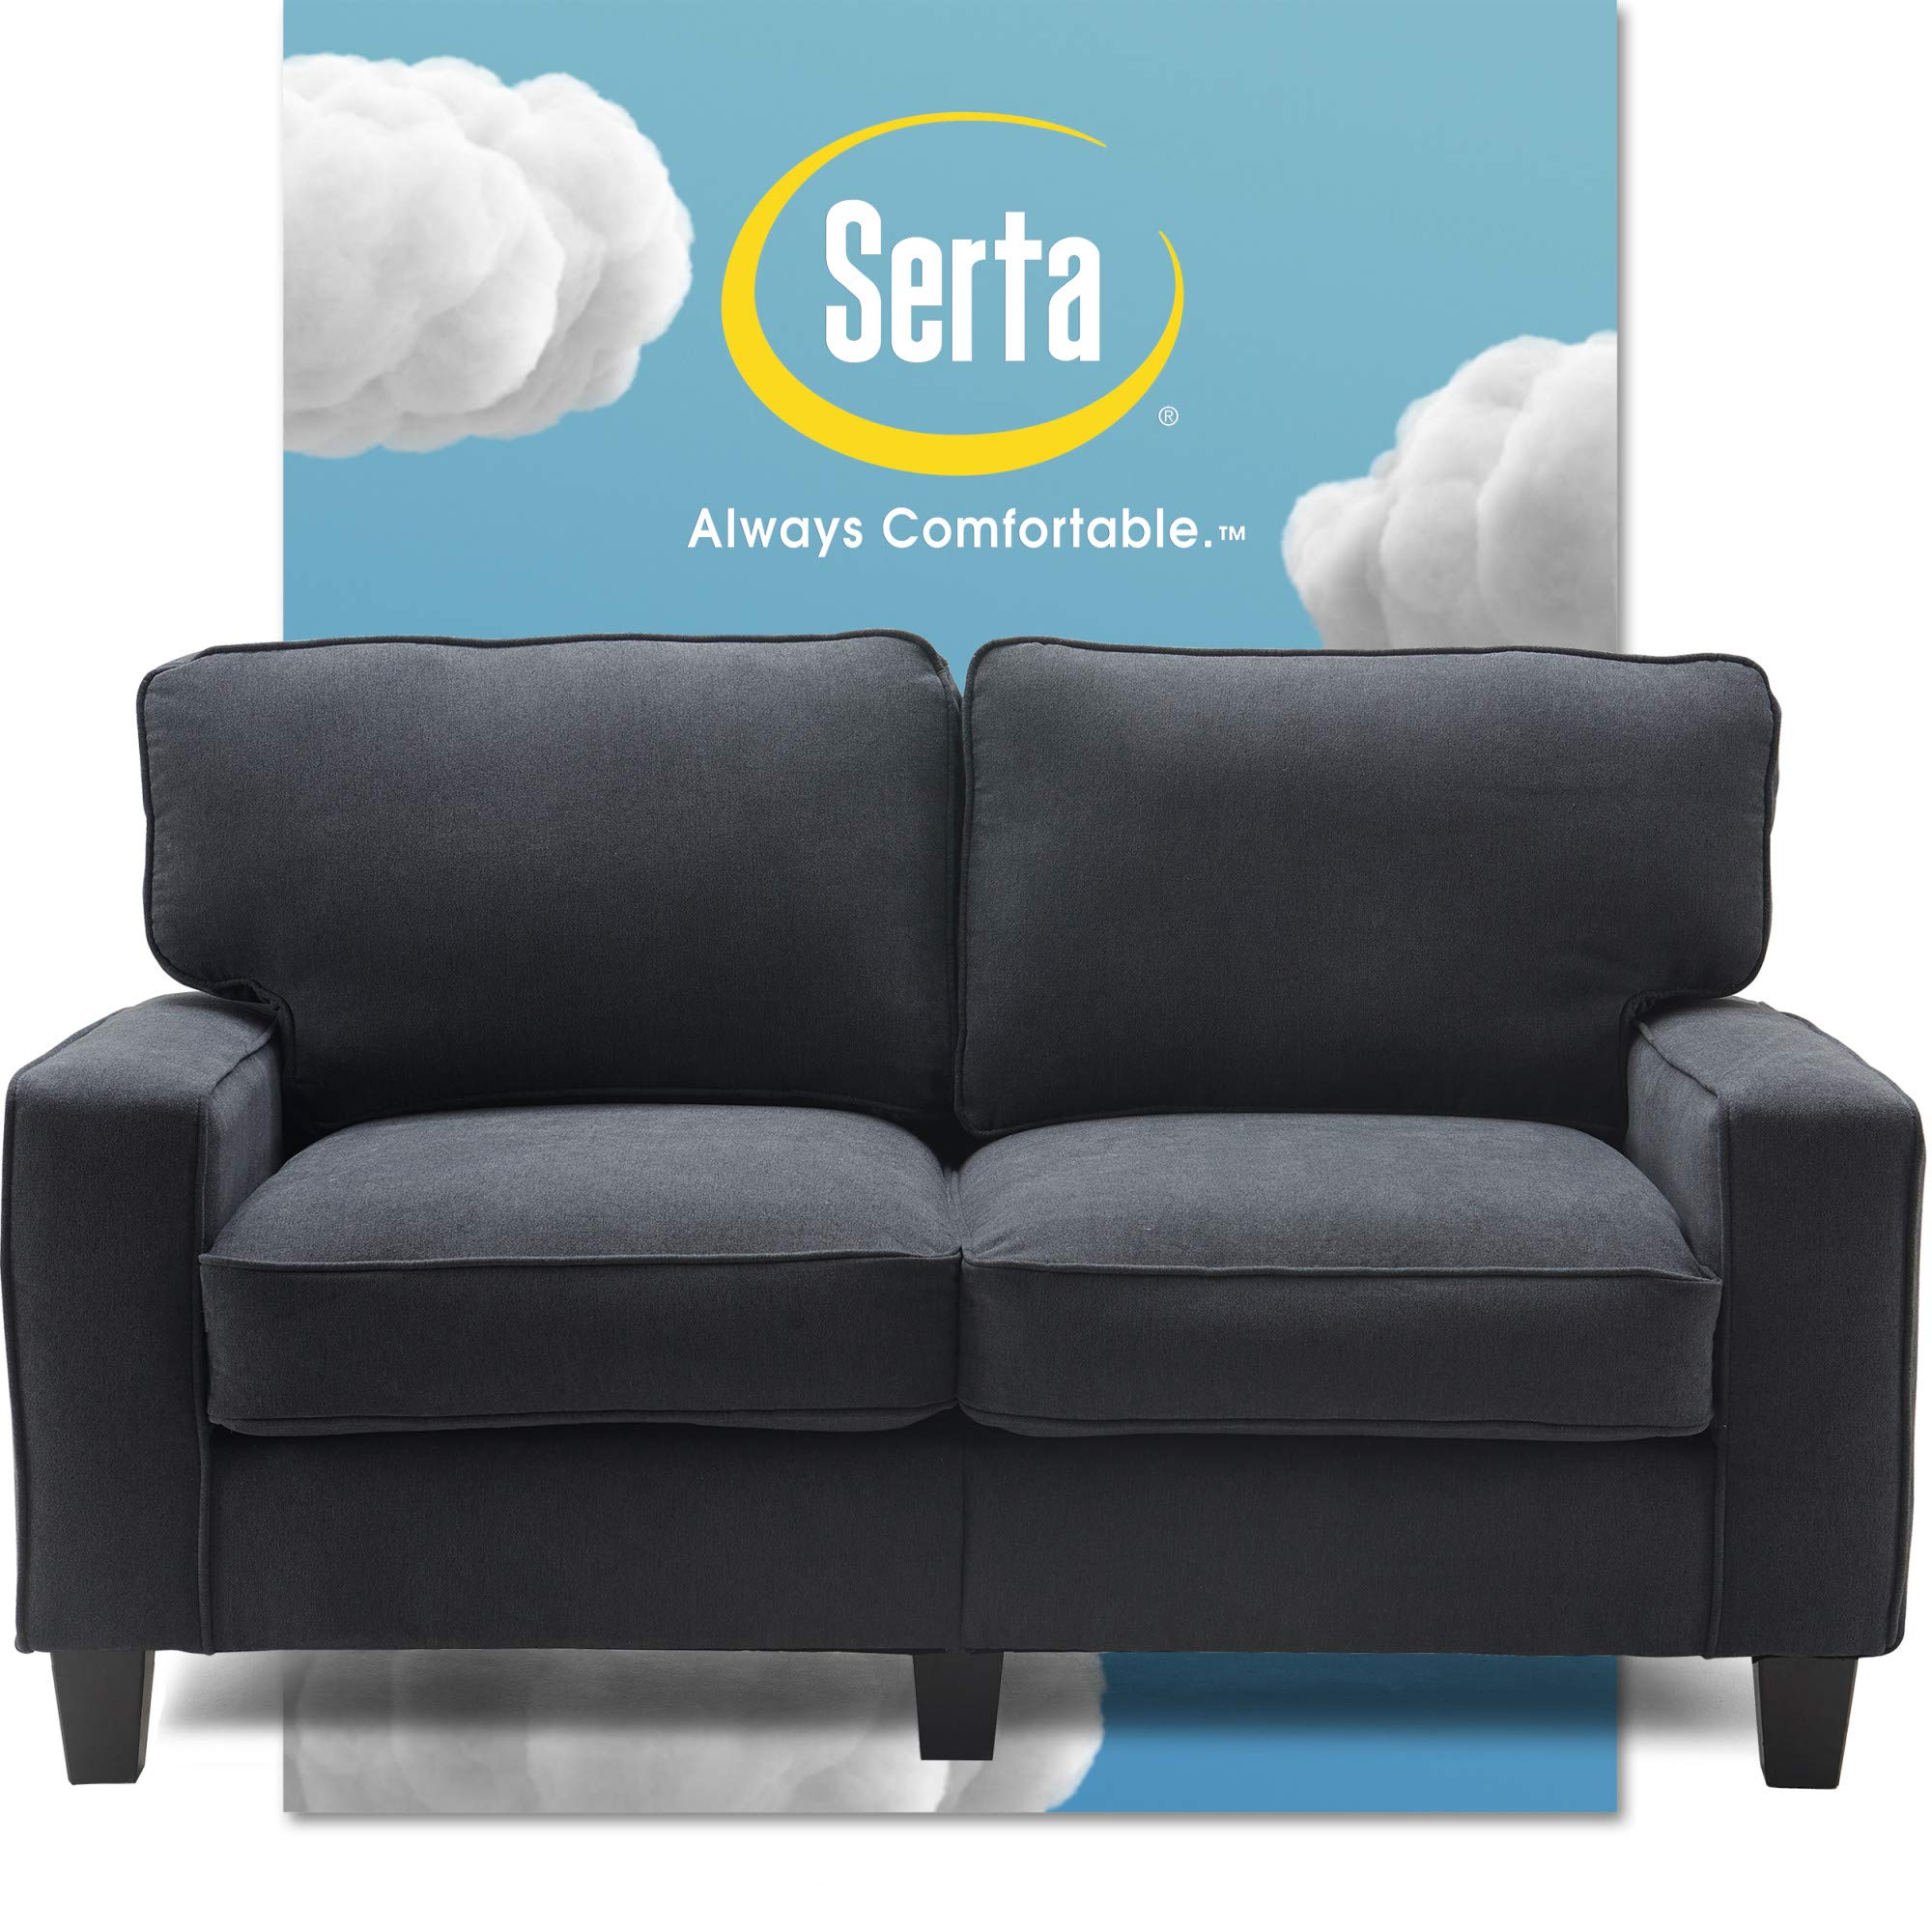 """Serta Palisades Upholstered Sofas for Living Room Modern Design Couch, Straight Arms, Soft Fabric Upholstery, Tool-Free Assembly, 61"""" Loveseat, Charcoal"""